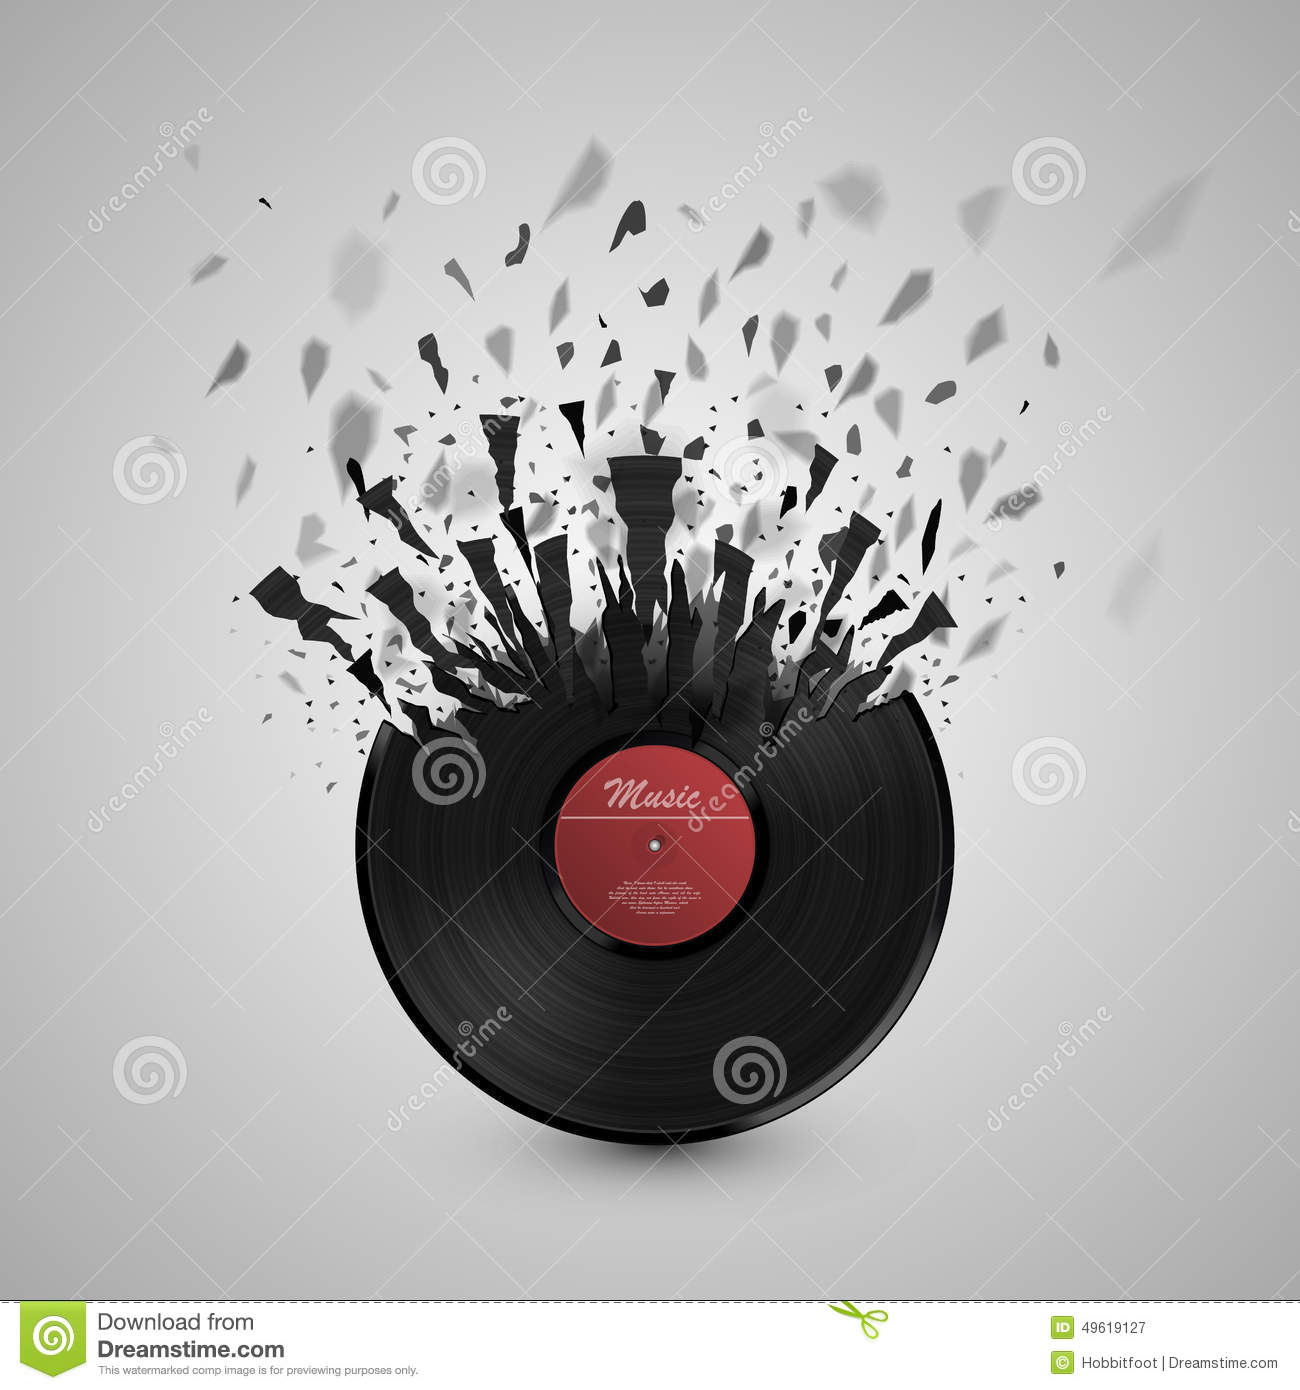 Musical Vinyl Wallpaper: Abstract Music Background. Vinyl Disk Explosion Stock